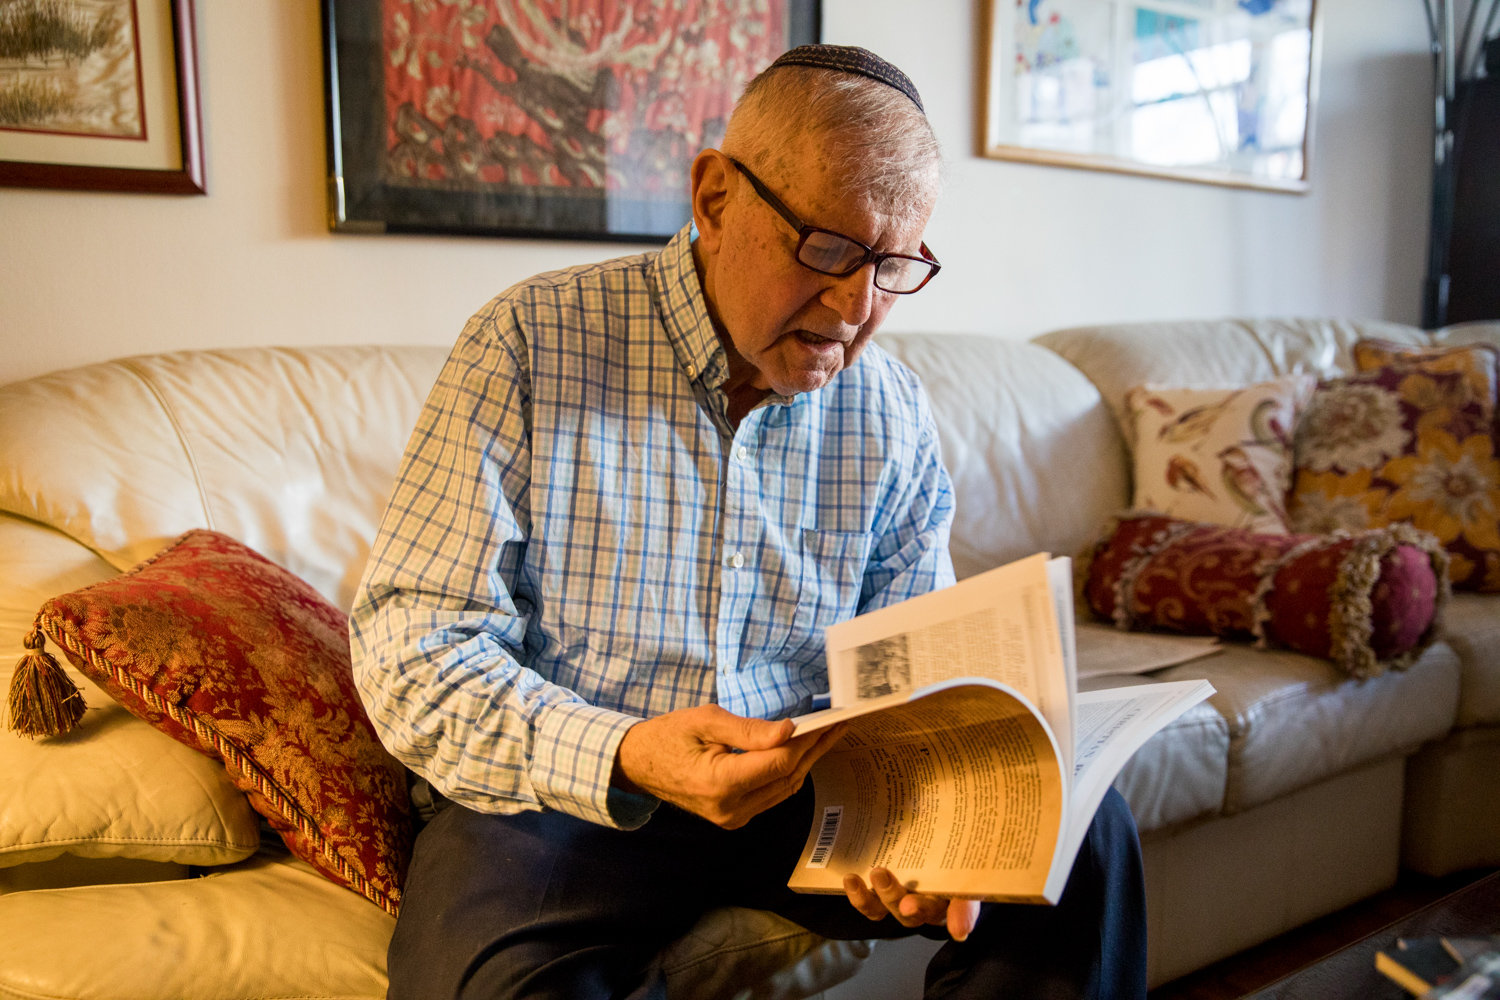 Ron Rubin looks through a copy of his book 'Strangers & Natives' in his Riverdale home. He put together a book based on old newspaper reports to tell the story of early Jewish life in the United States.